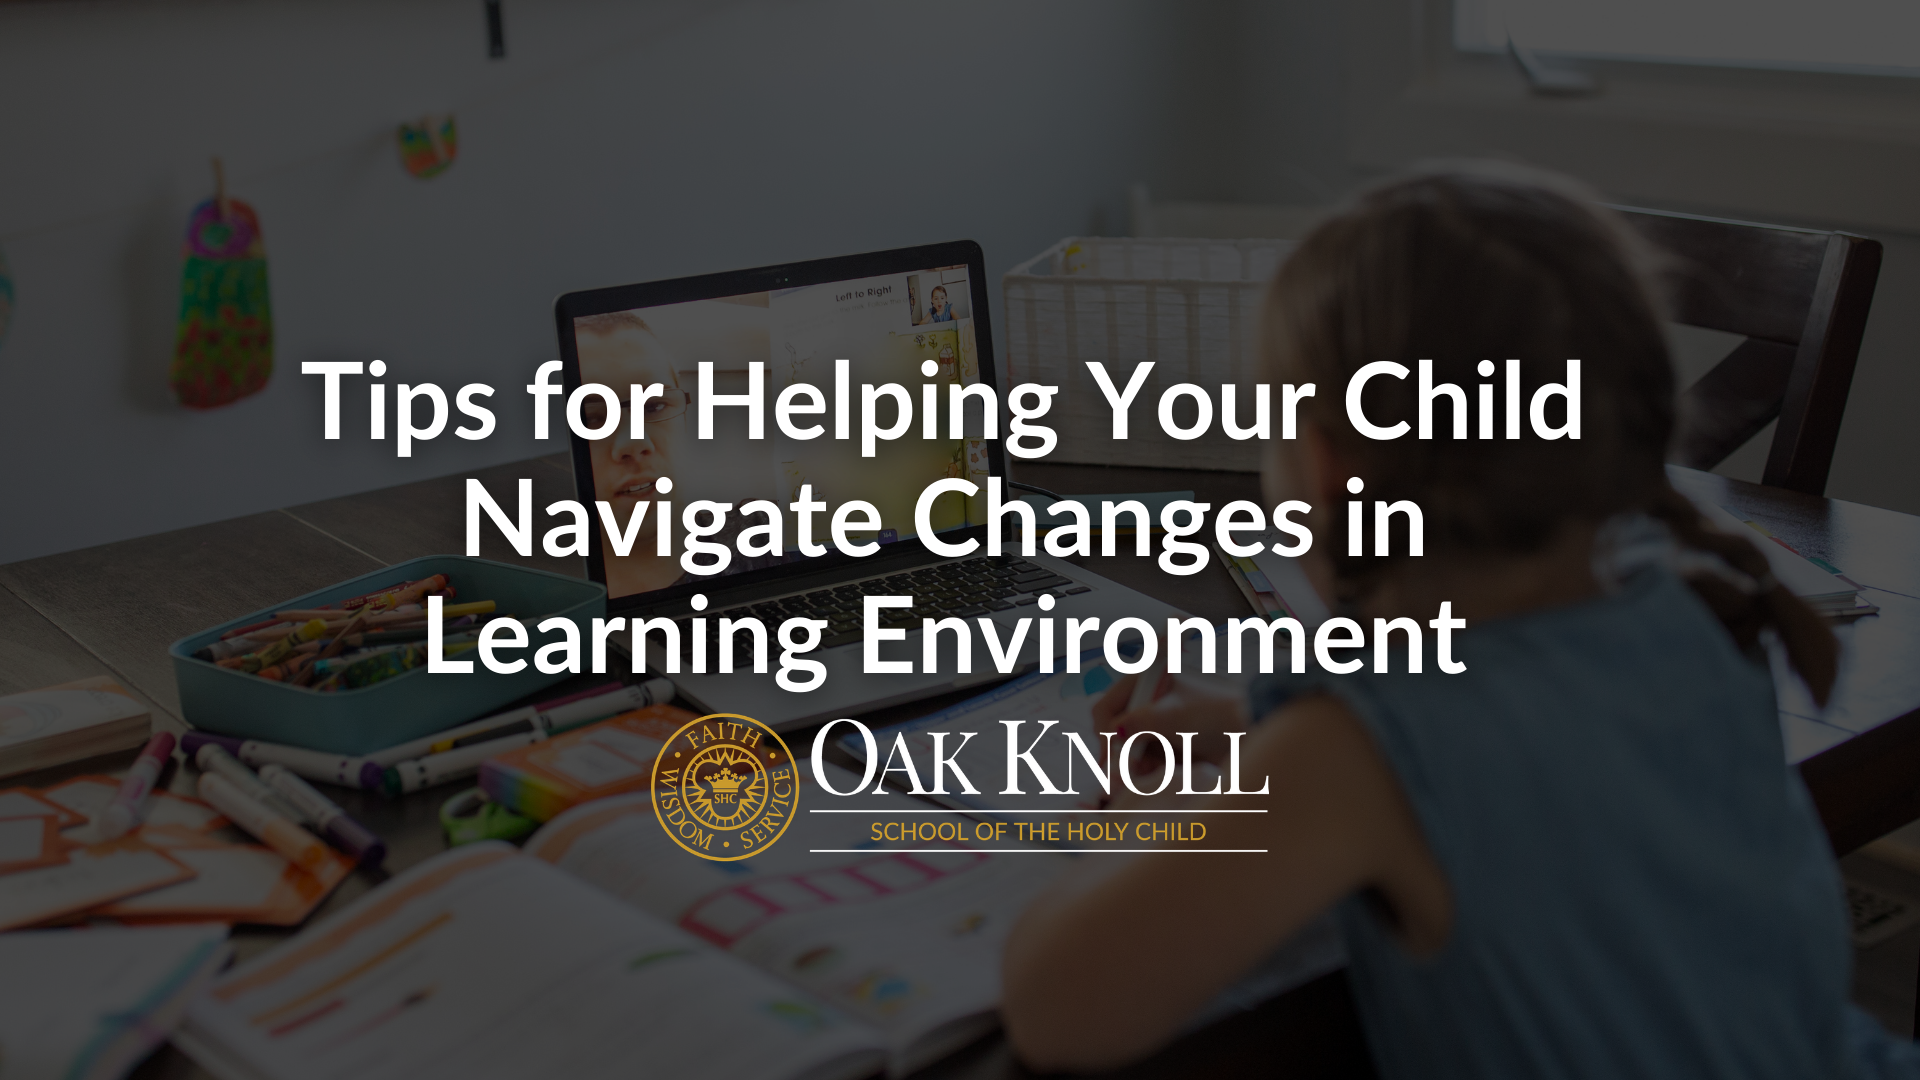 Tips for Helping Your Child Navigate Changes in Learning Environment